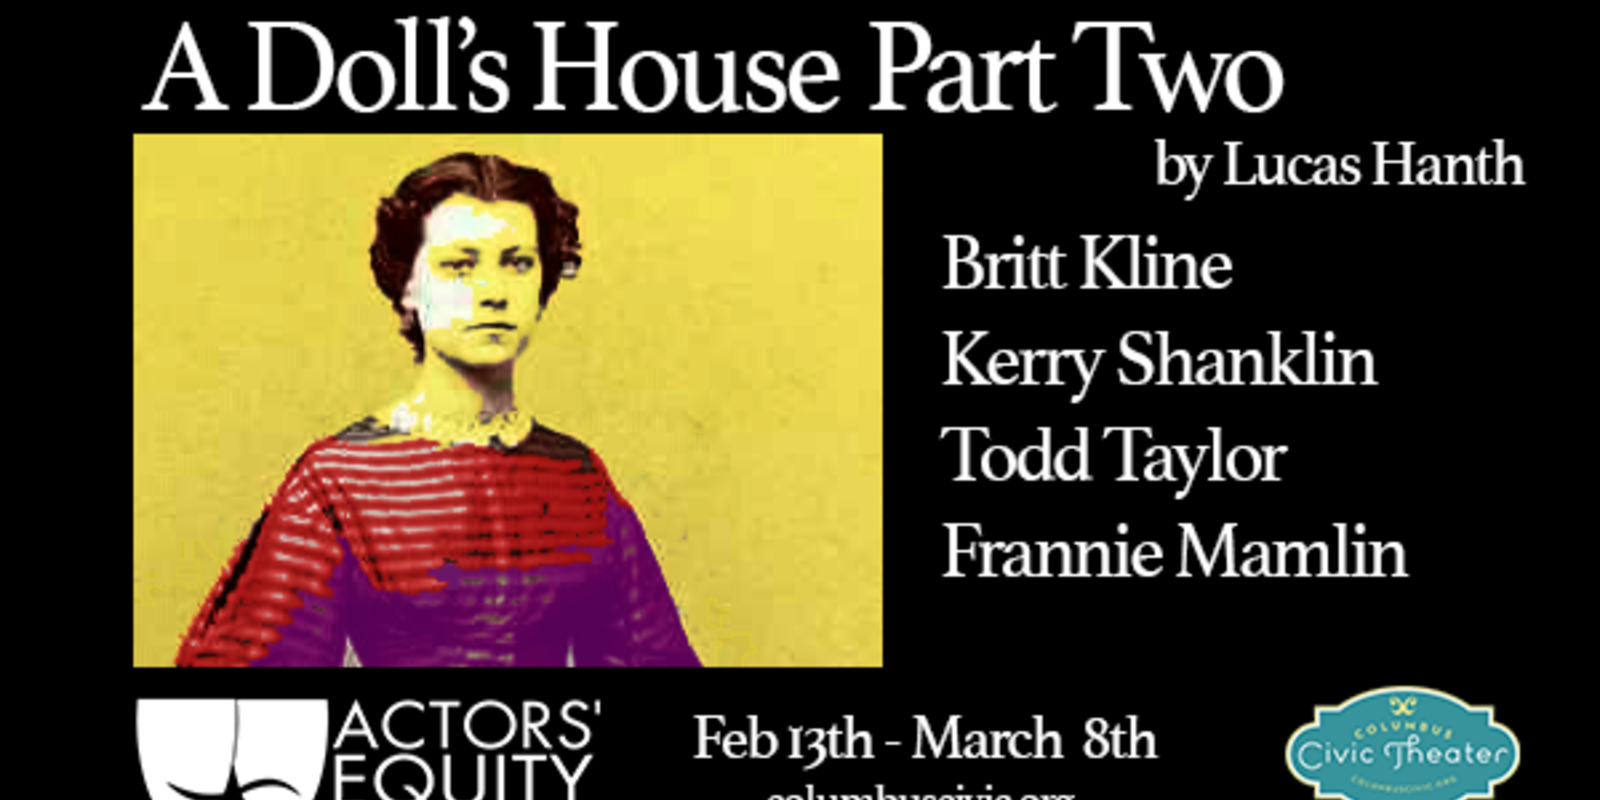 A Doll's House, Part Two